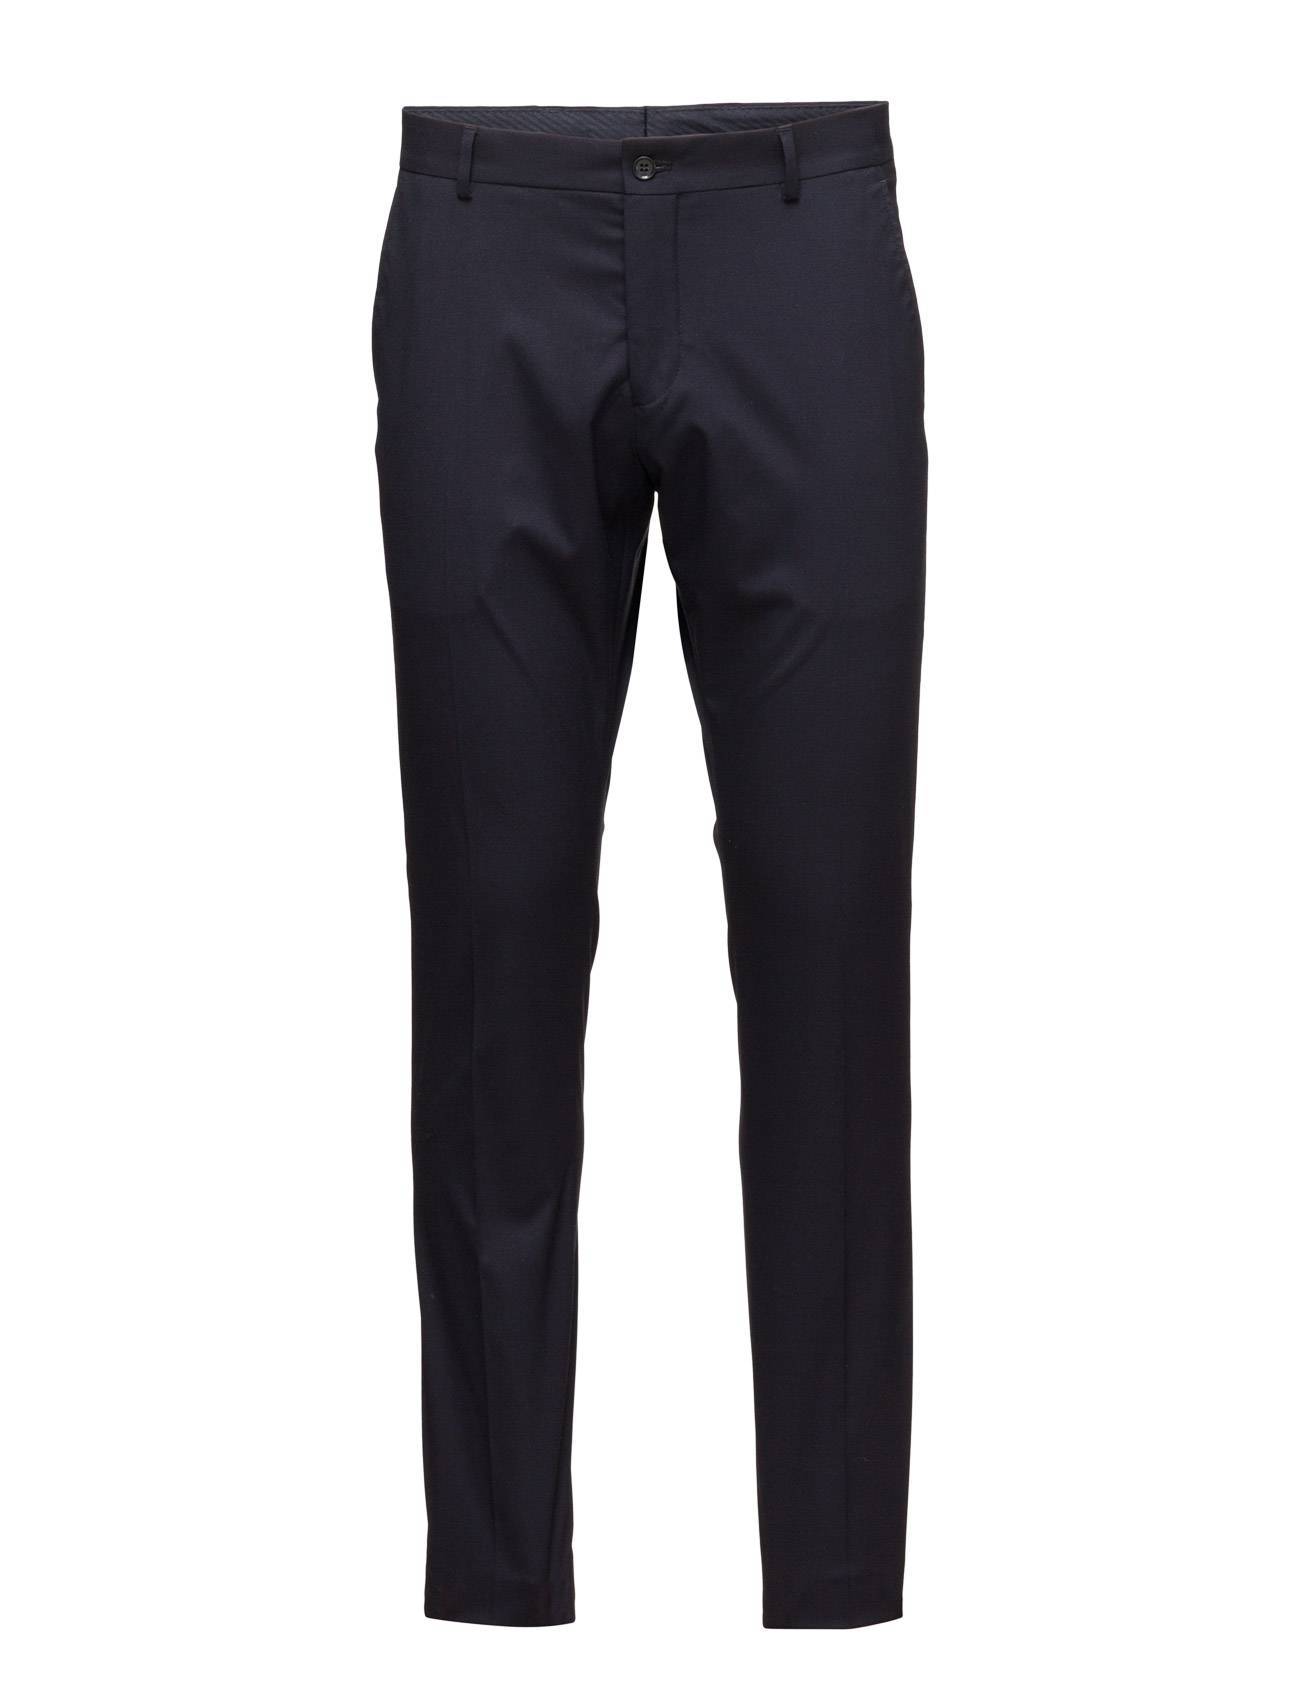 Selected Homme Shdnewone-Mylologan1 Navy Trouser Noos